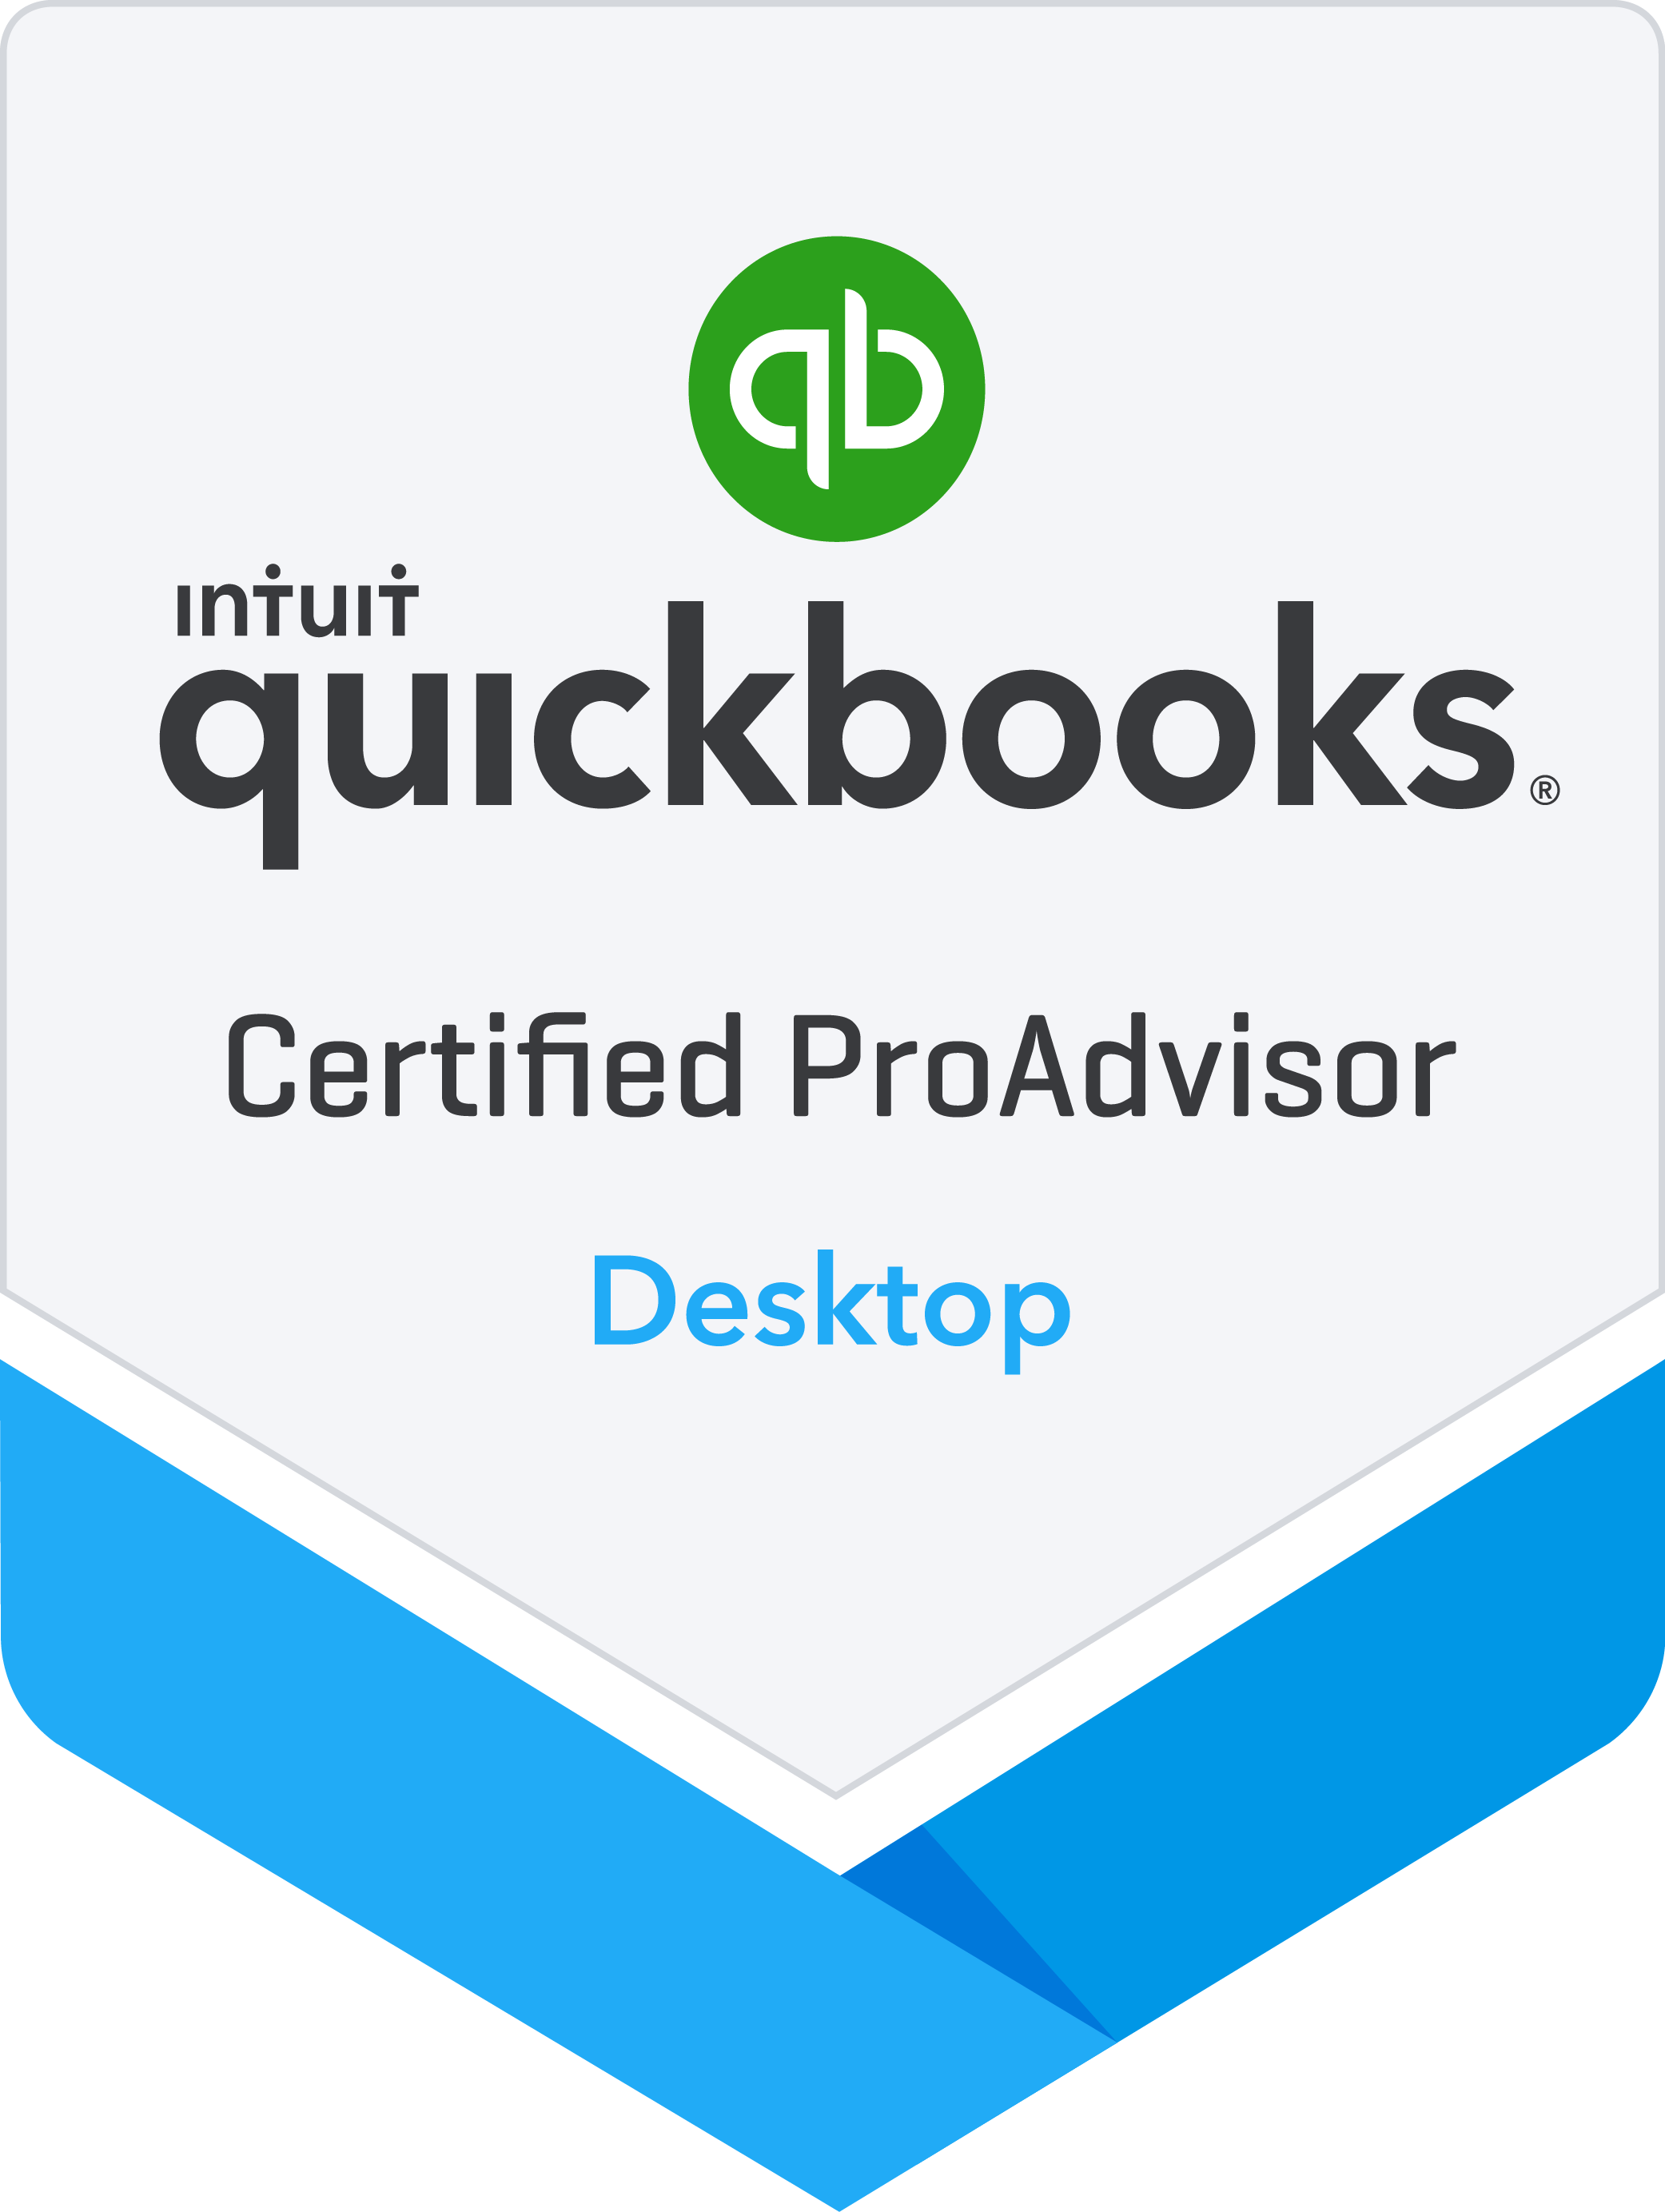 Quick Books Desktop Certified ProAdvisor